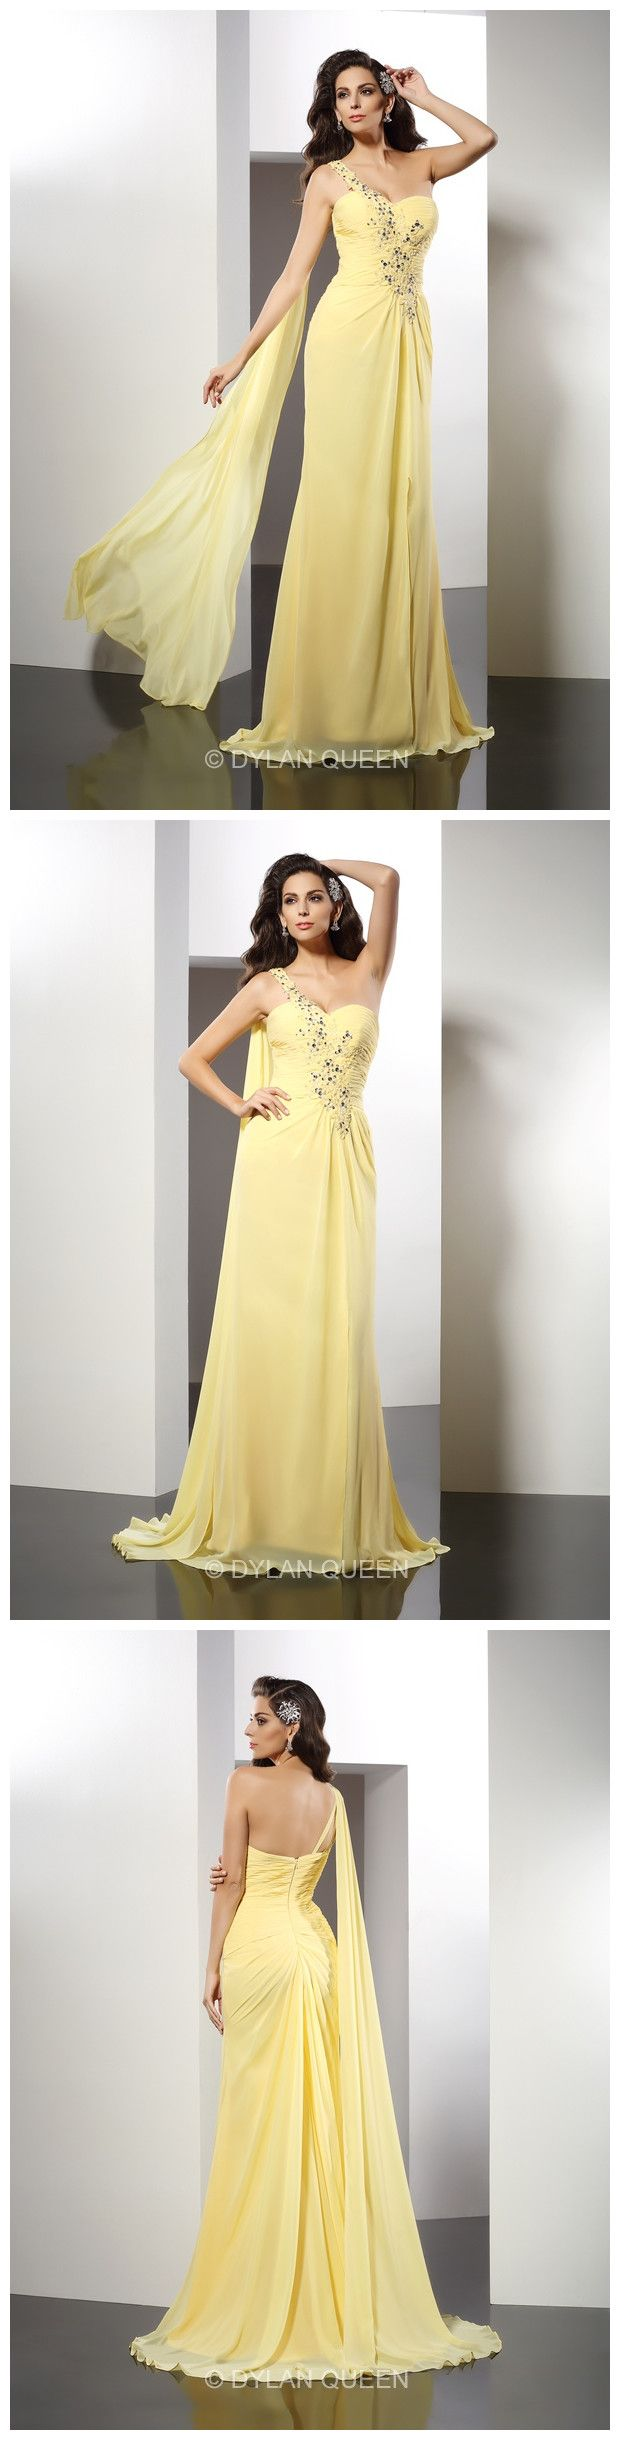 Lovely yellow long dress natural fairy style would you like to